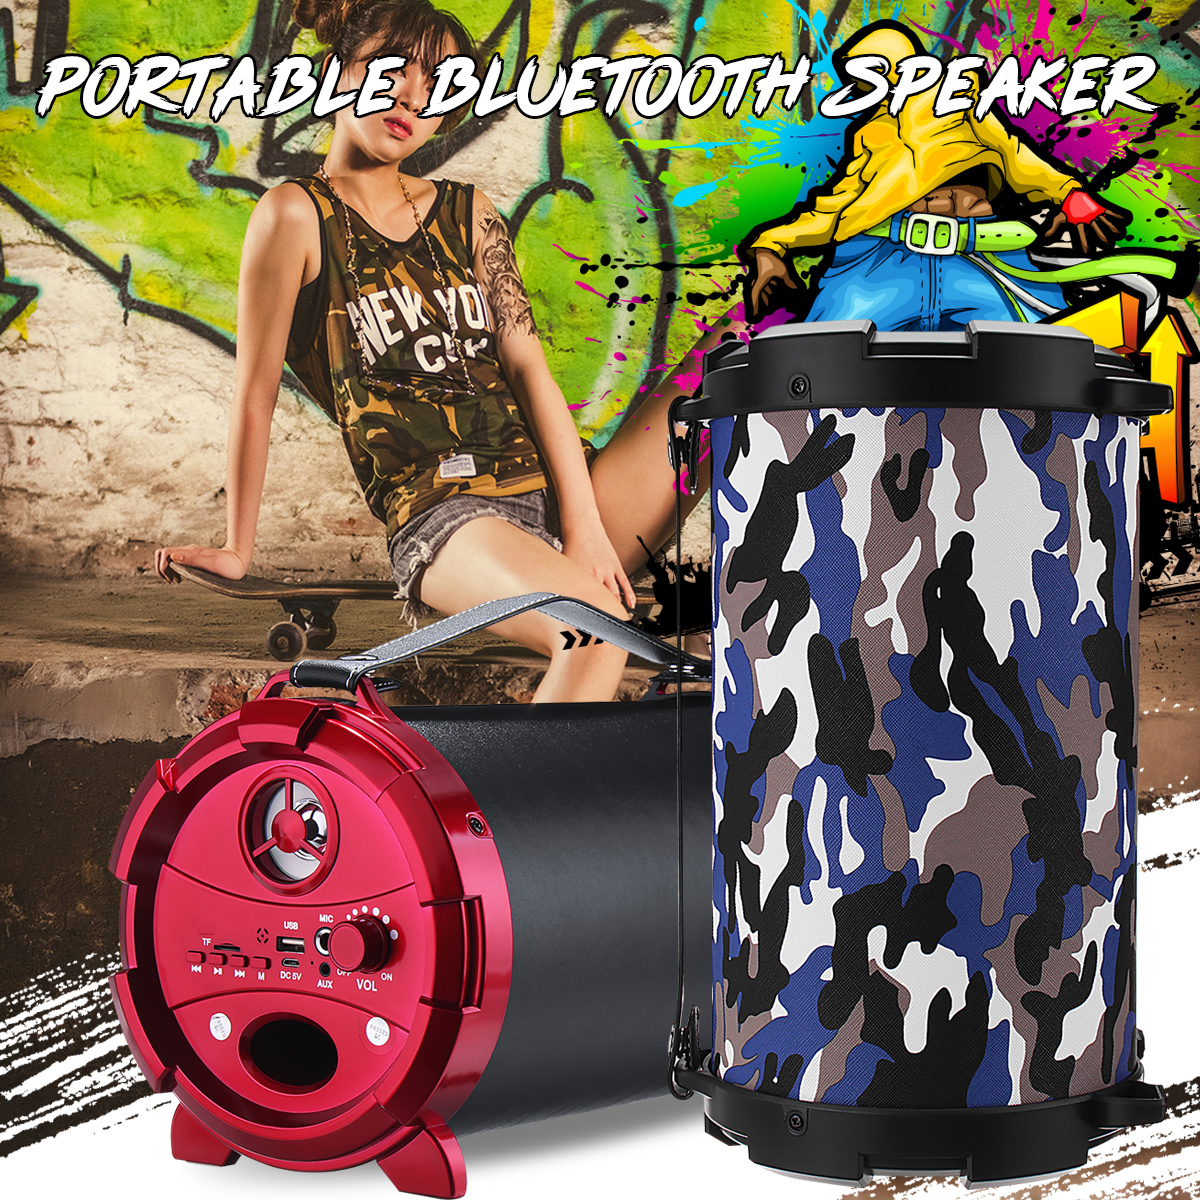 Portable Wireless Hifi Bluetooth Speakers 10W Bass Subwoofer Loundspeaker FM Radio TF Card/USB/AUX Stereo + Microphone Outdoor kinco portable outdoor sports 15w wireless bluetooth speaker bass subwoofer 2000mah hifi stereo loundspeaker radio fm tf usb aux